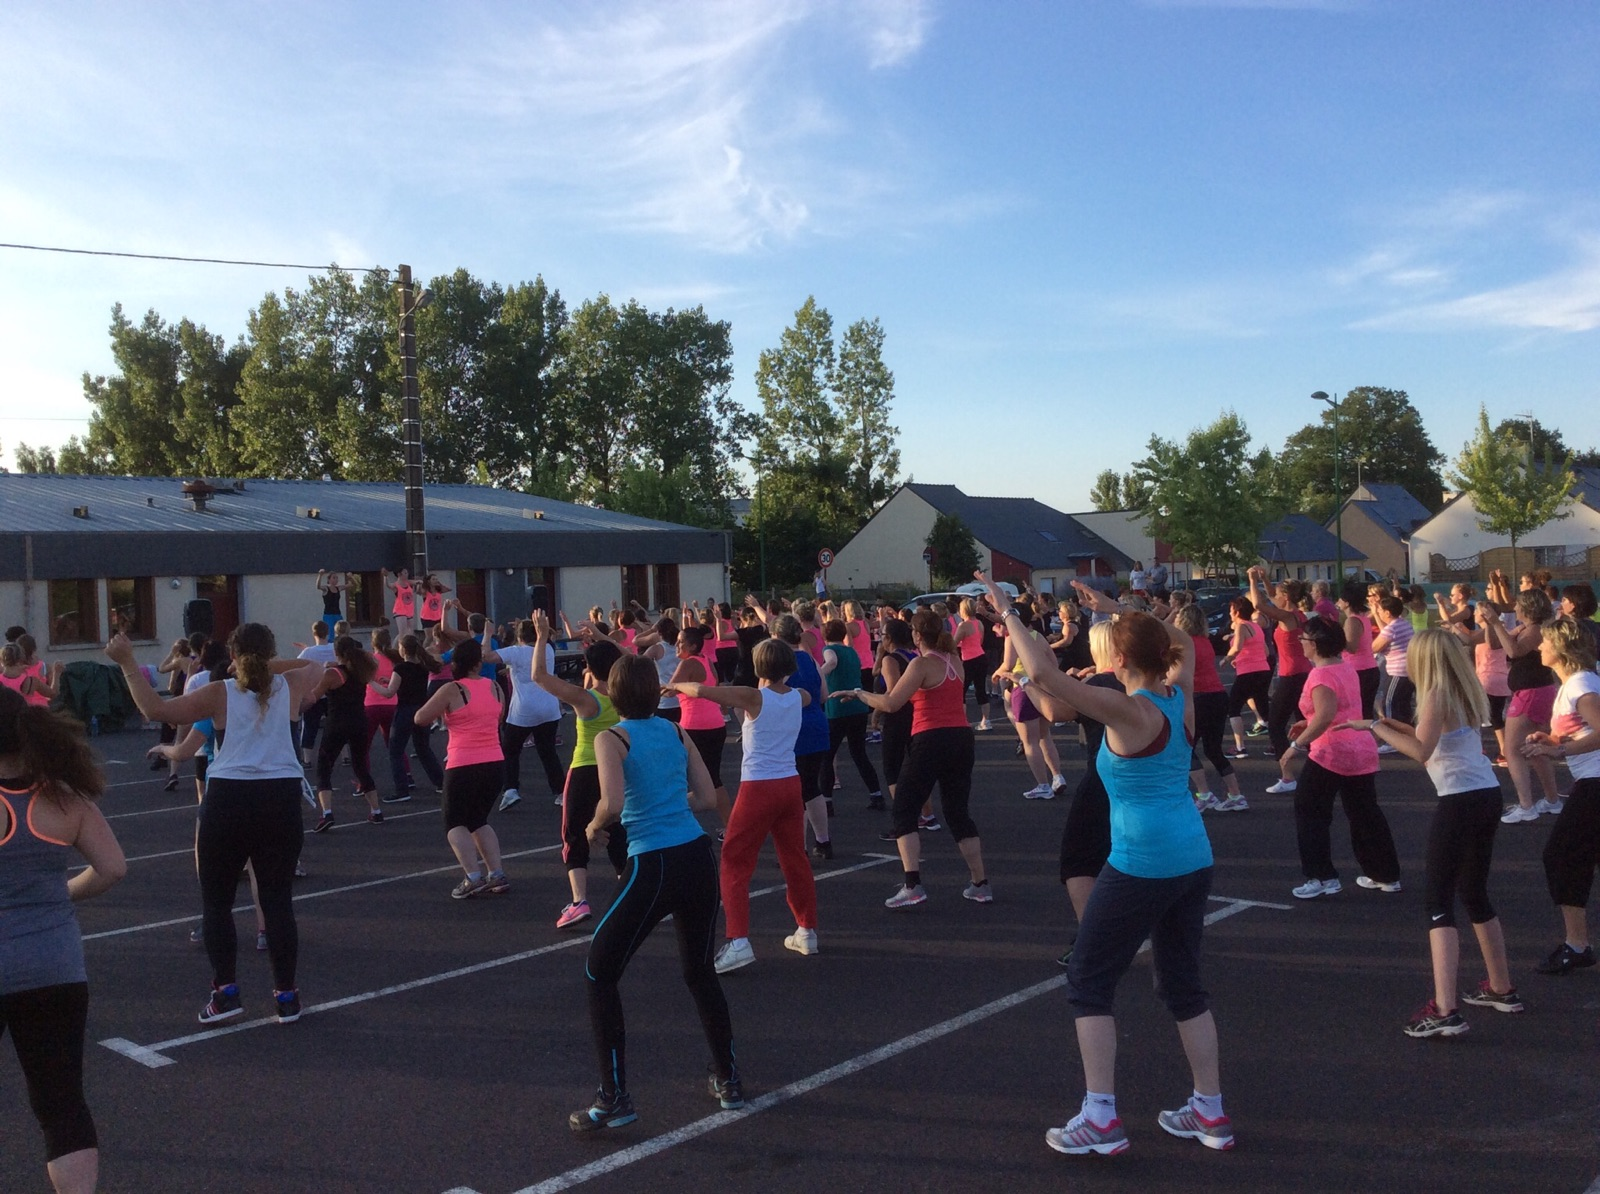 https://static.blog4ever.com/2013/08/749750/zumba.jpg